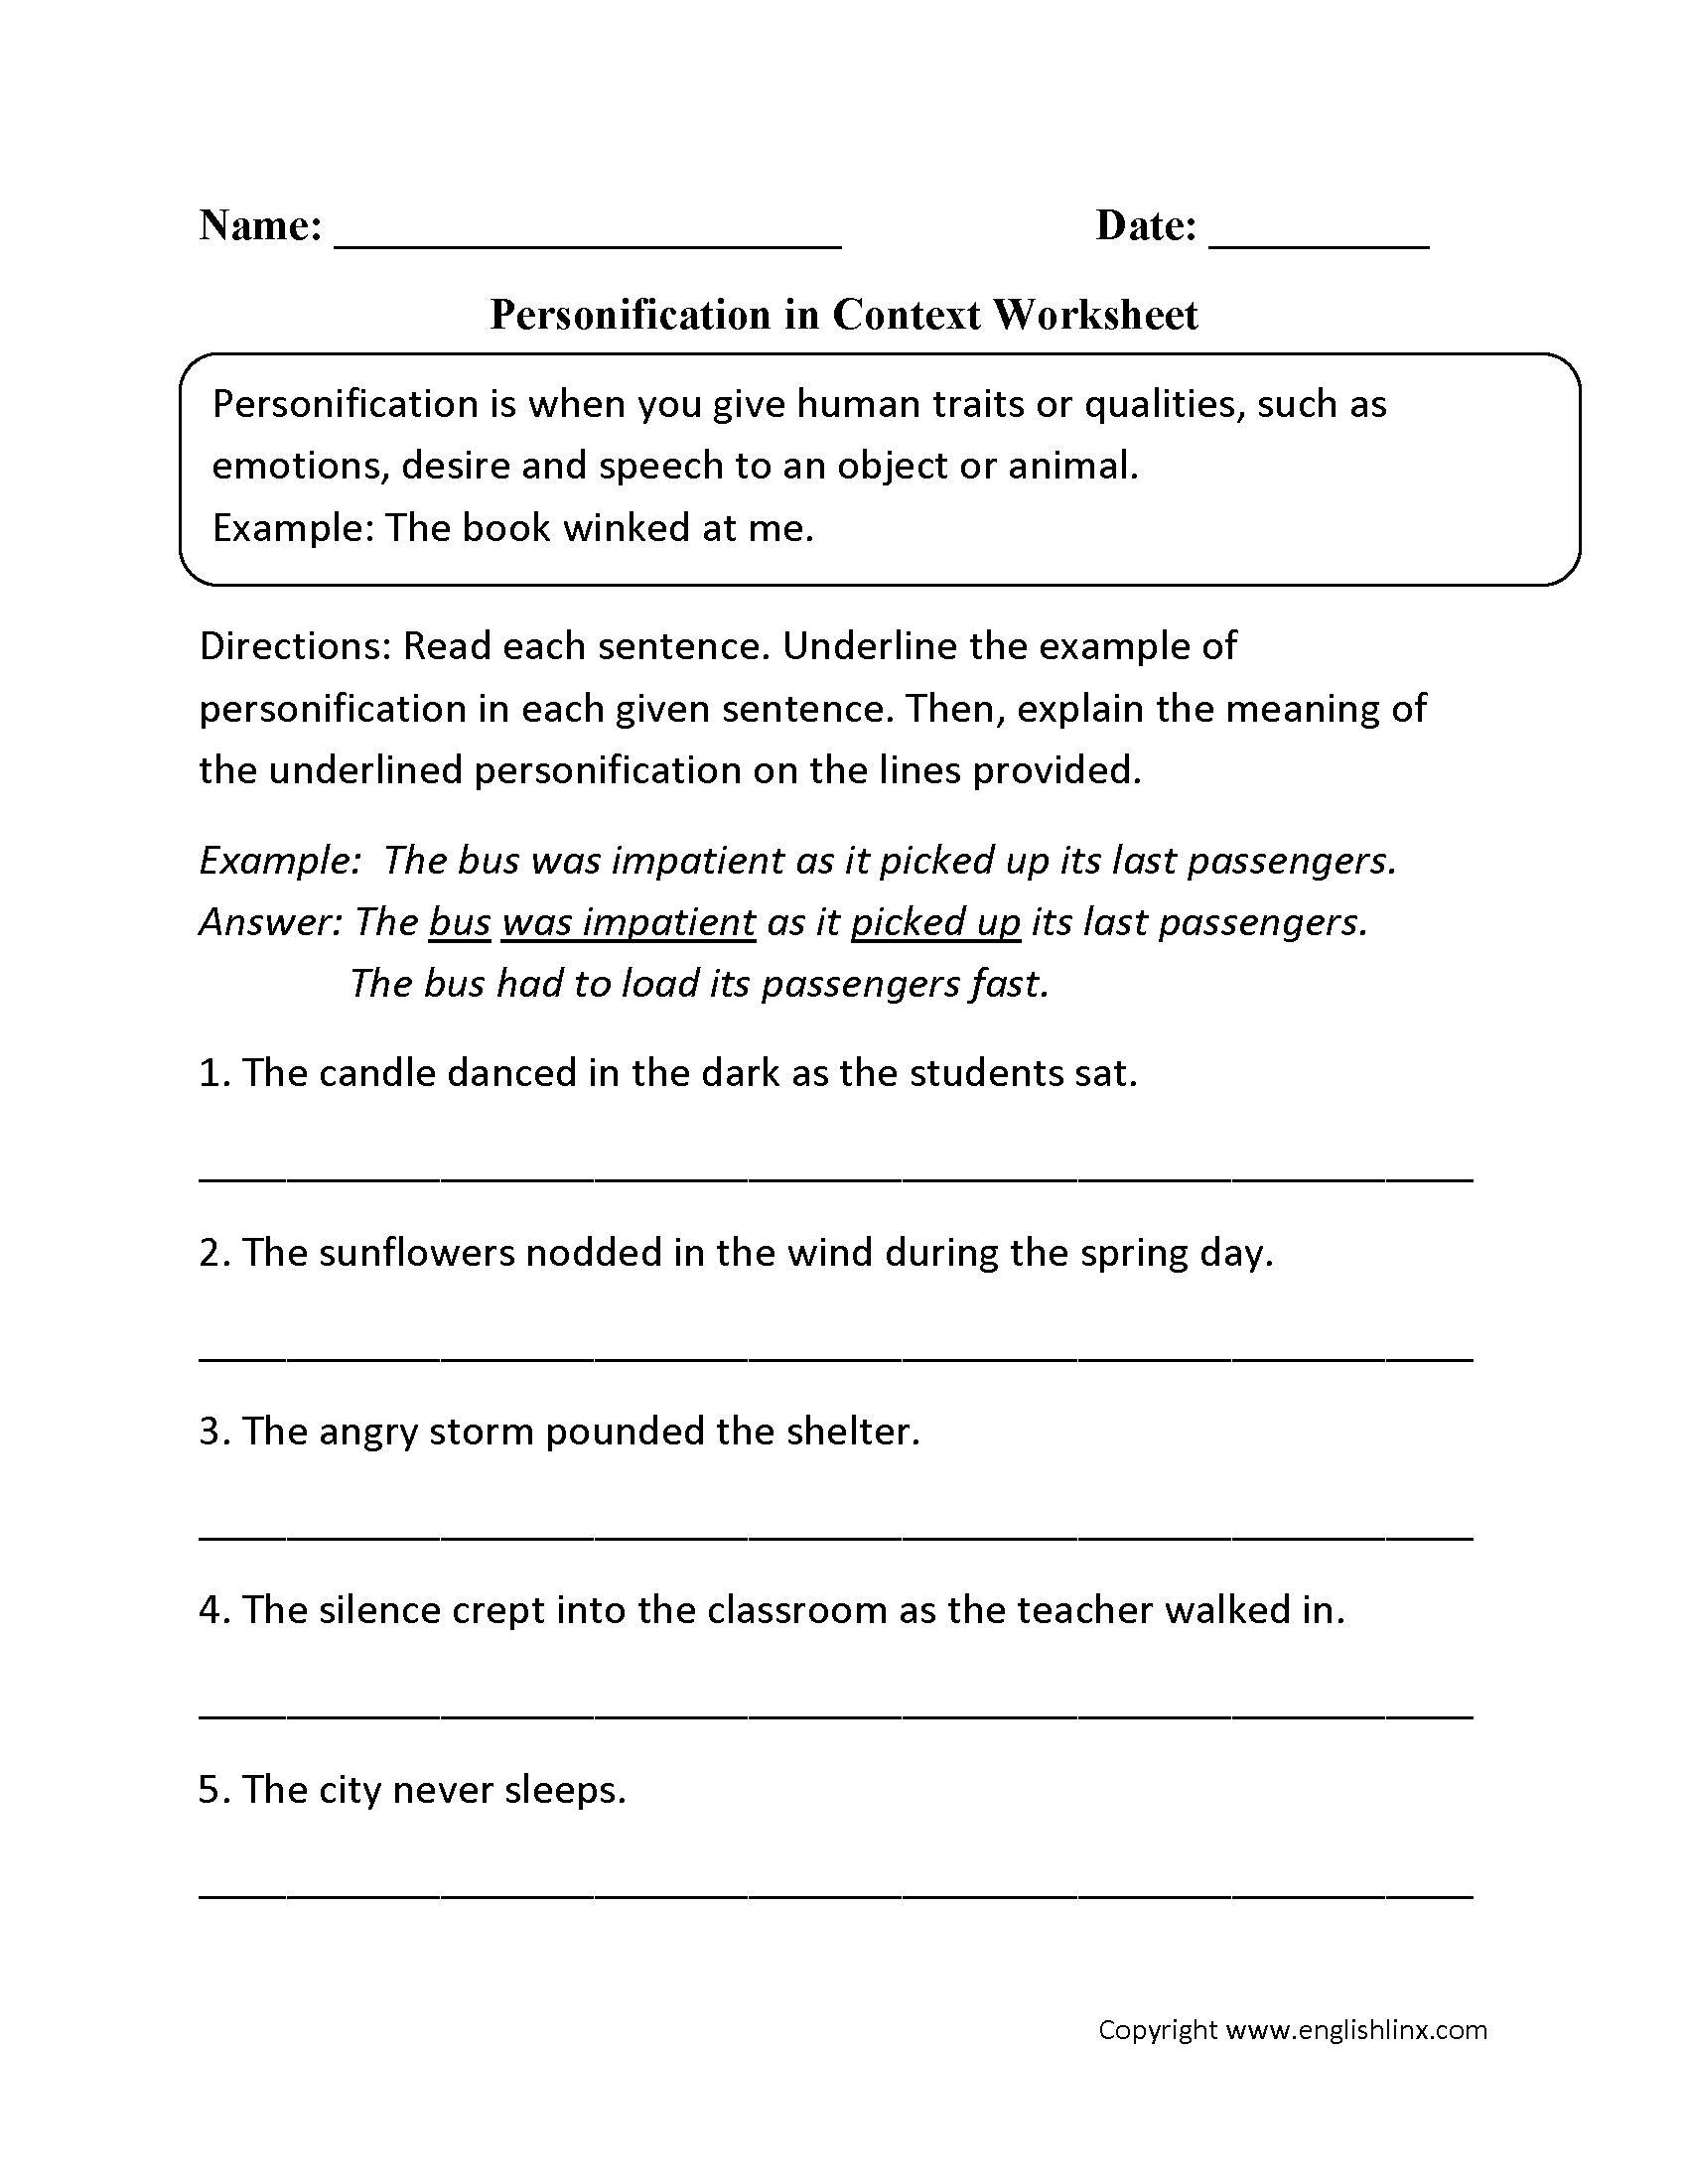 Worksheets Sat Grammar Worksheets personification figurative language worksheets schoolteaching worksheets